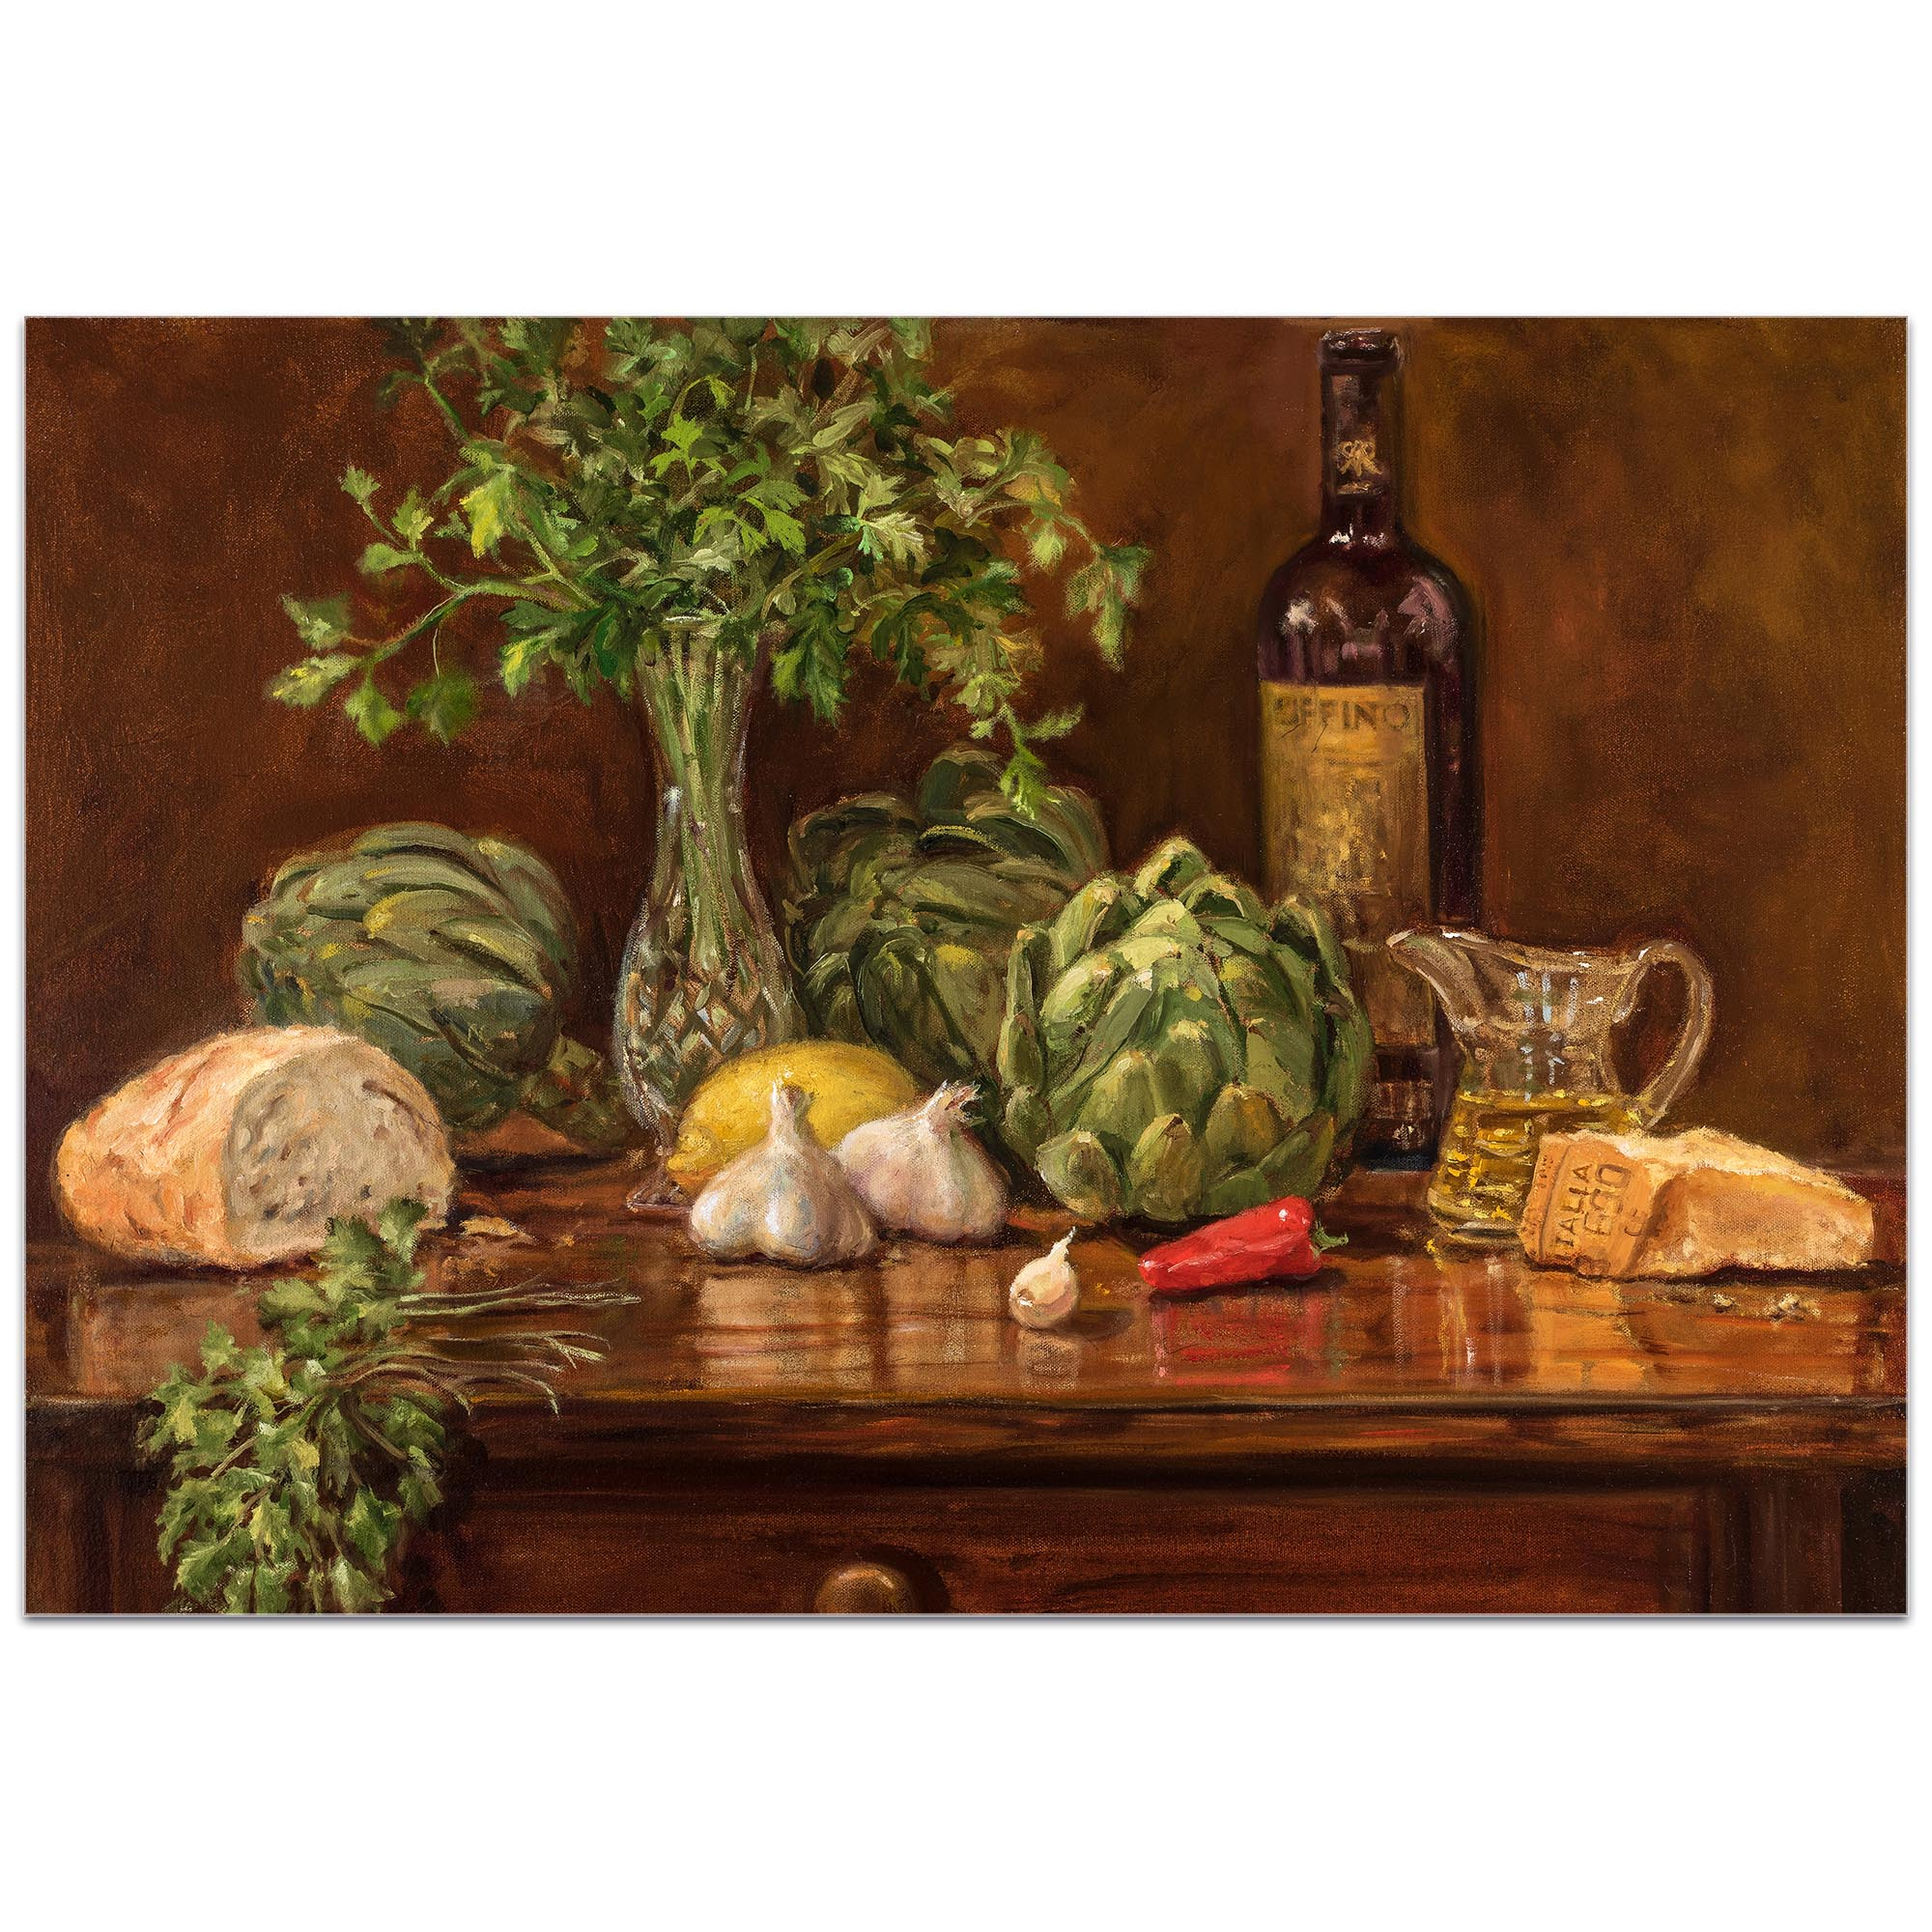 Traditional Wall Art 'Artichoke' - Still Life Decor on Metal or Plexiglass - Image 2